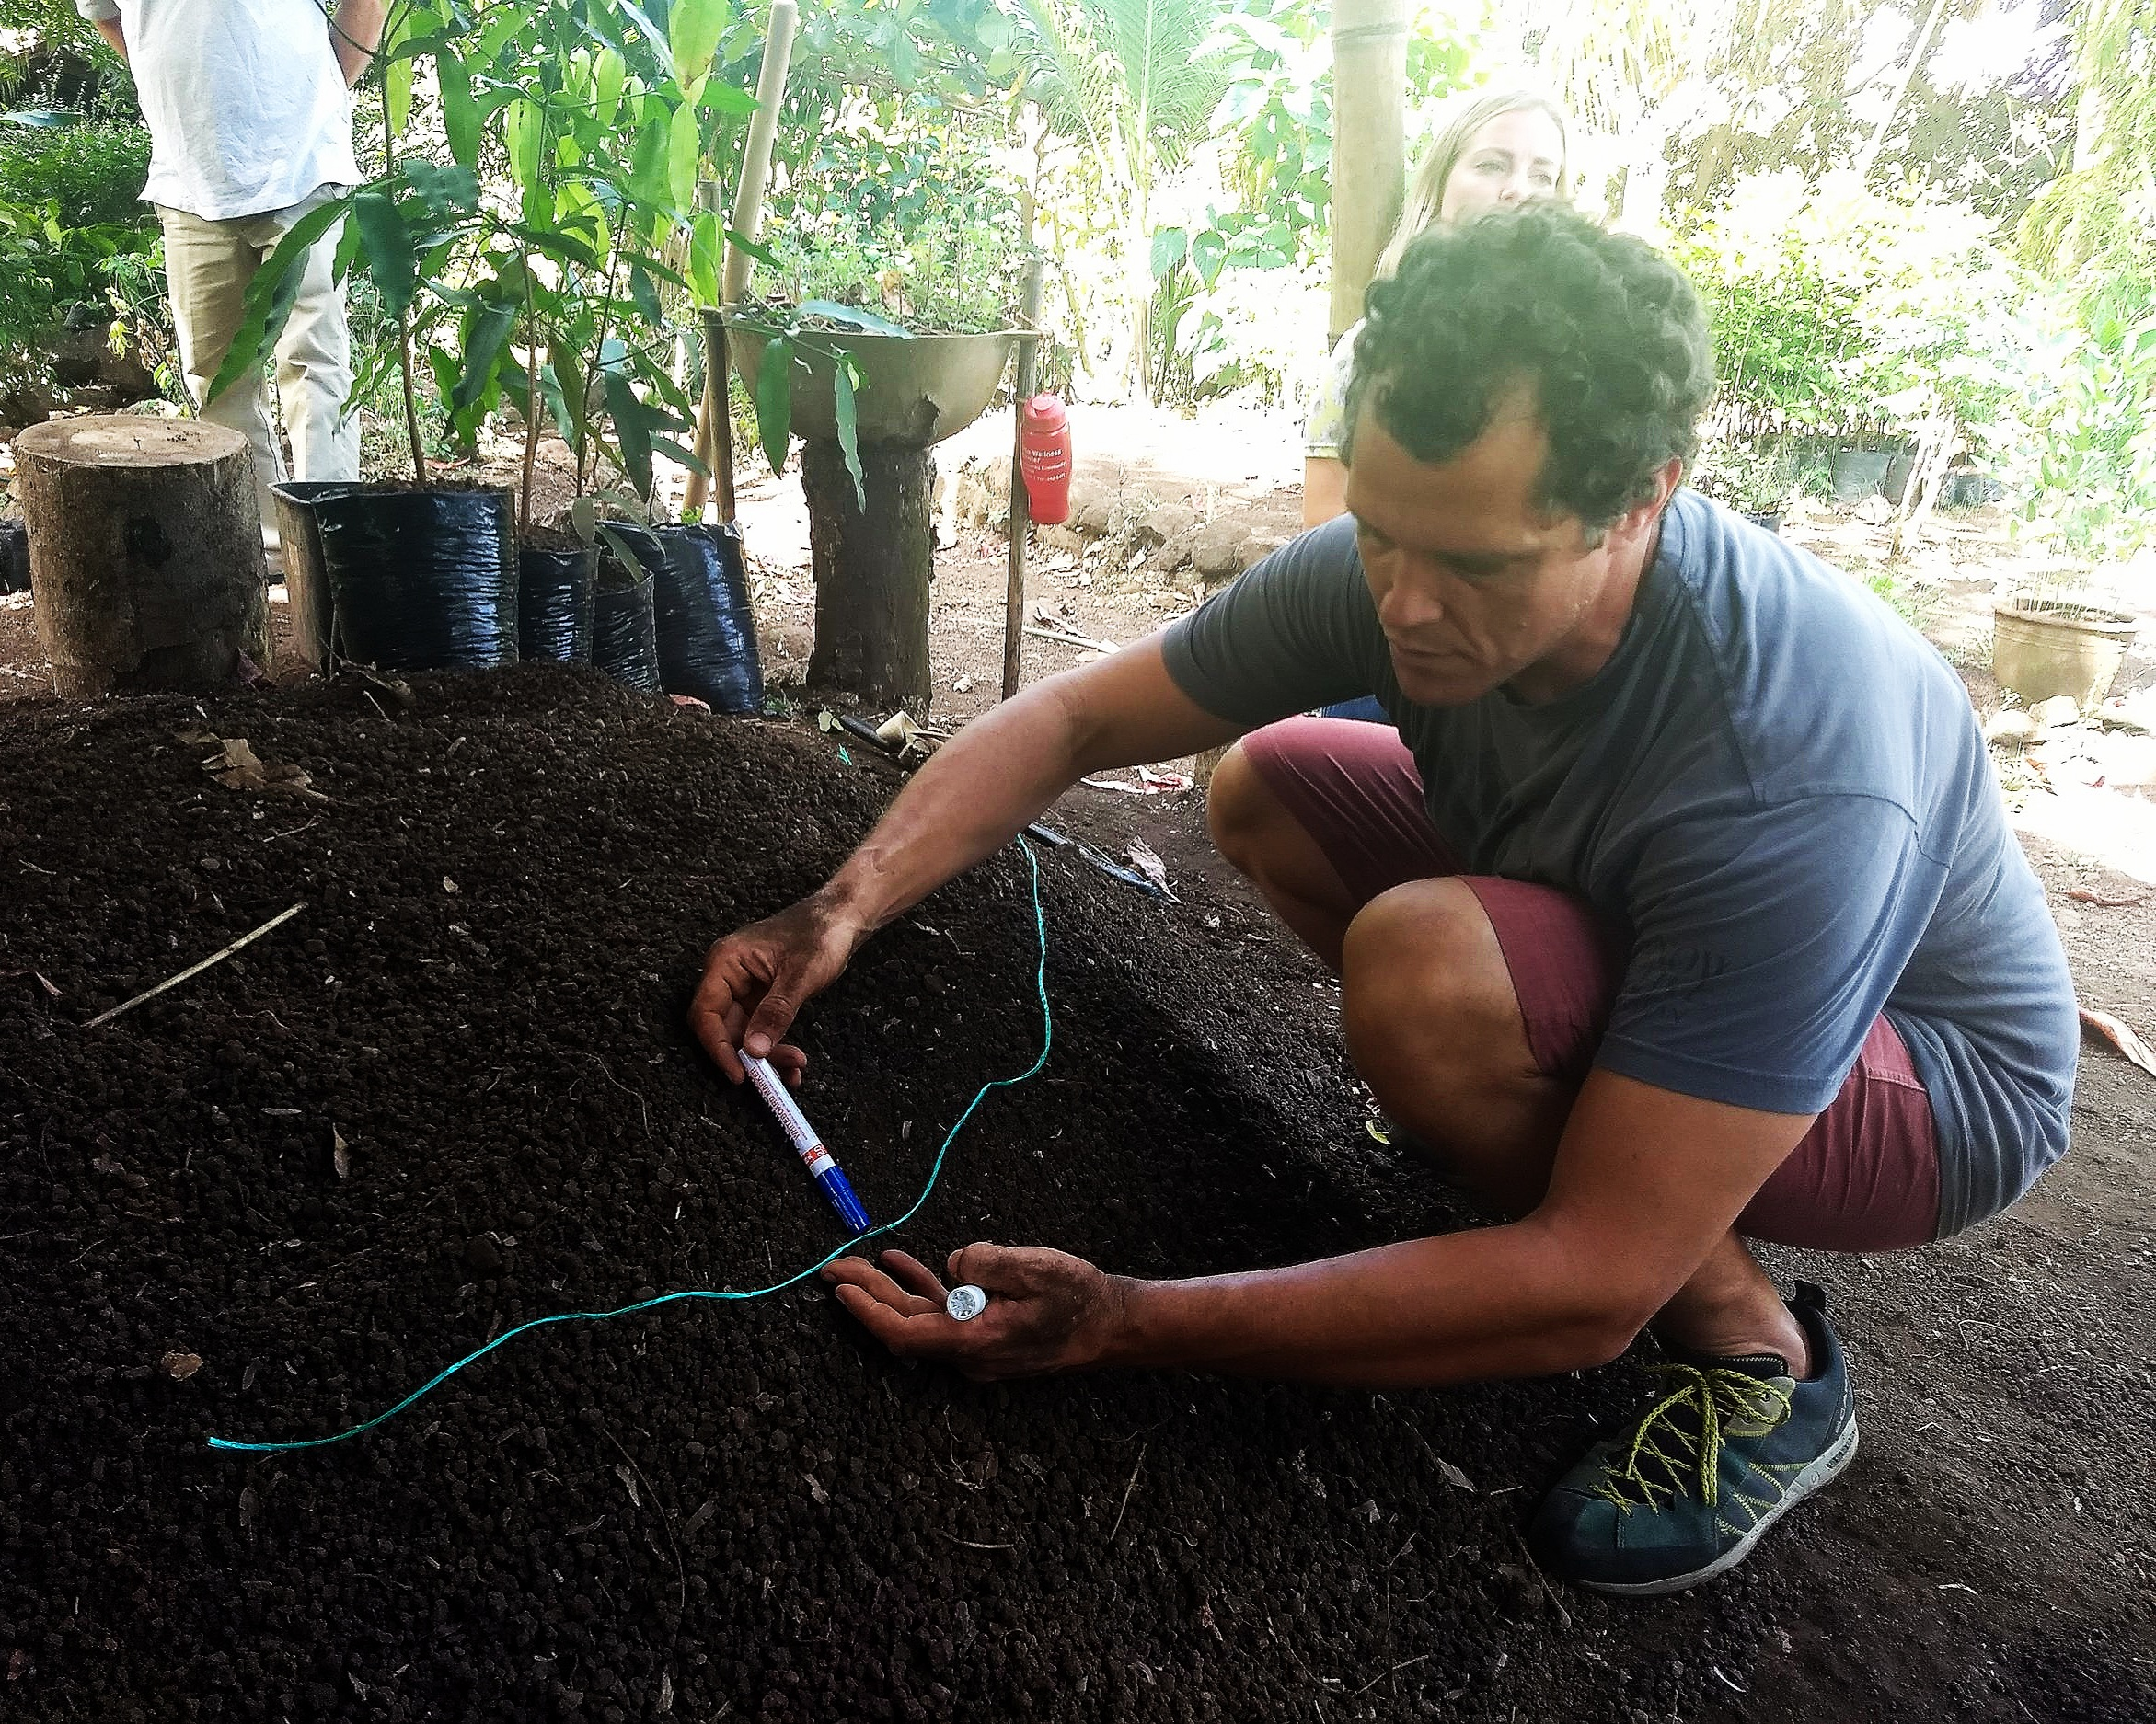 Chris demonstrating water run-off management and contour lines during the Permaculture Design Course 2019 on Ometepe